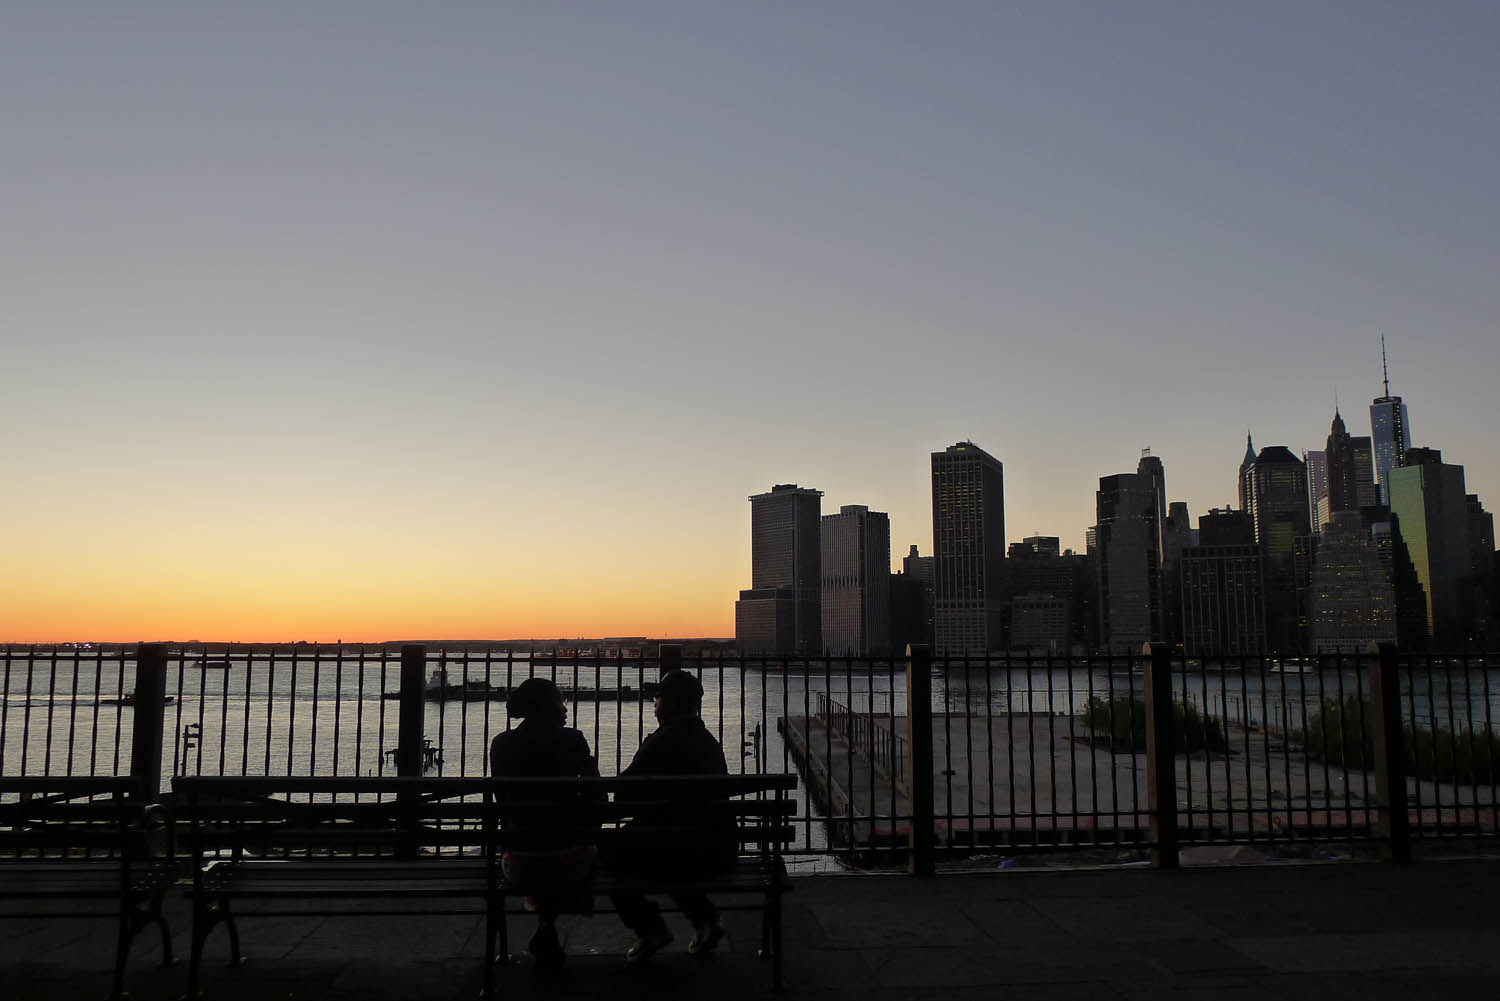 watched the sun set from the brooklyn heights promenade today u0027s